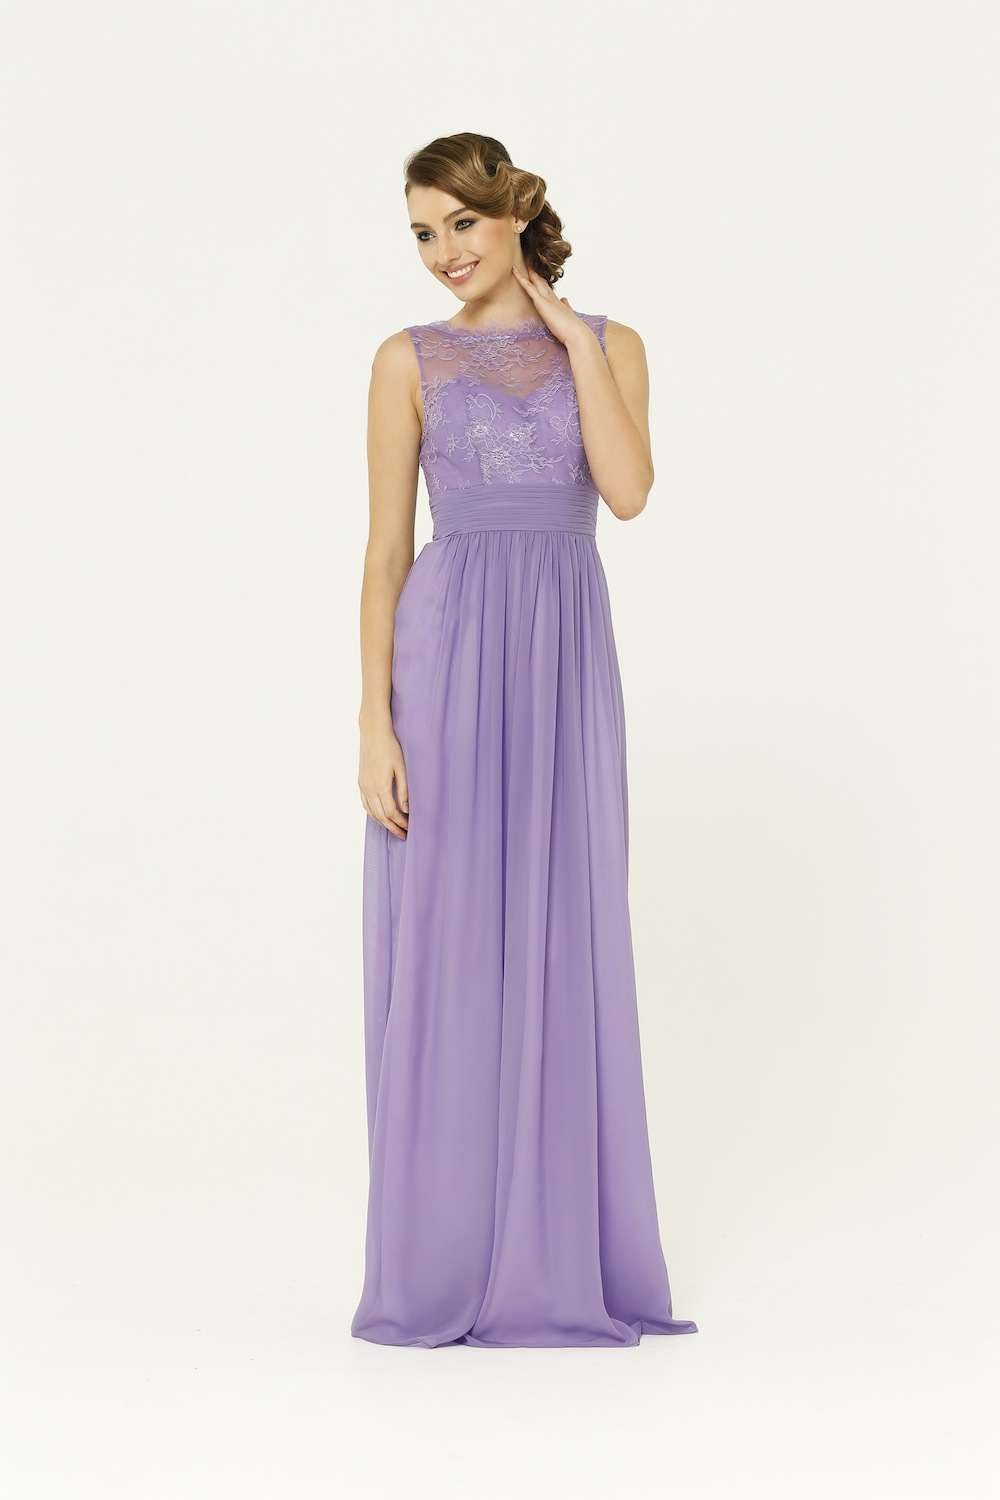 Charlotte Lavender Bridesmaid Dress